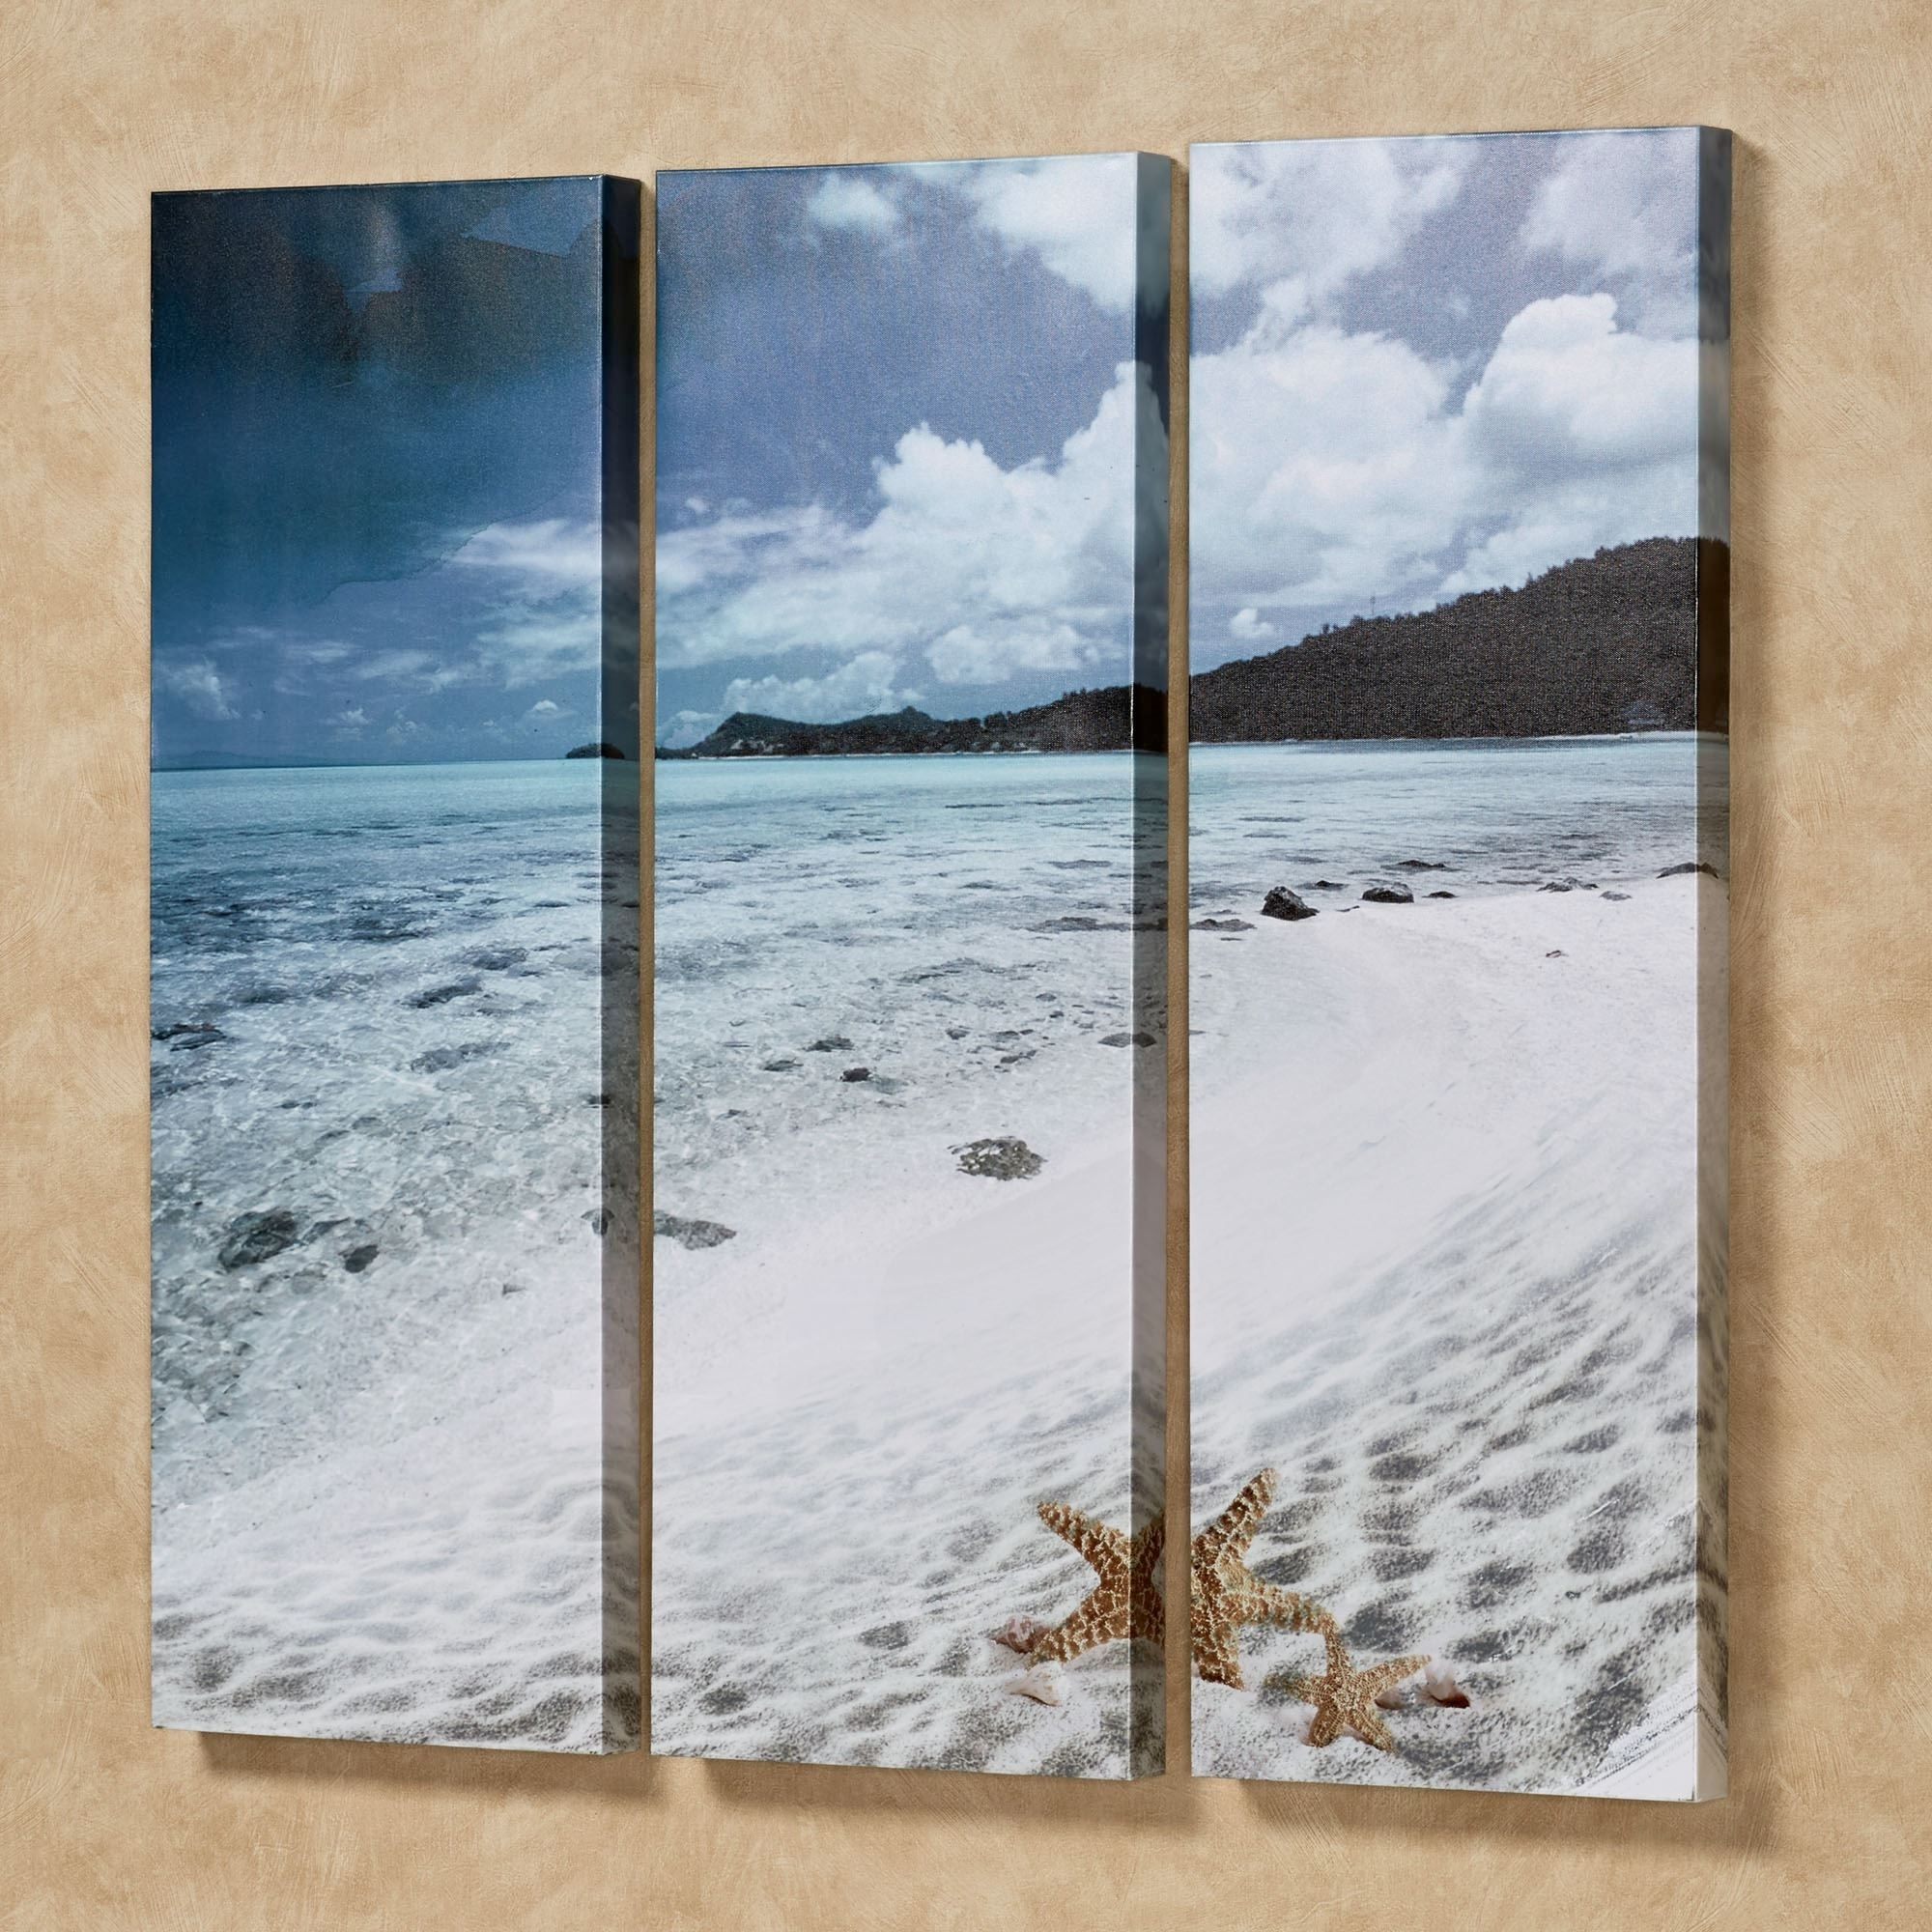 Coastal And Tropical Canvas Wall Art | Touch Of Class Intended For Best And Newest Canvas Wall Art Beach Scenes (View 15 of 15)